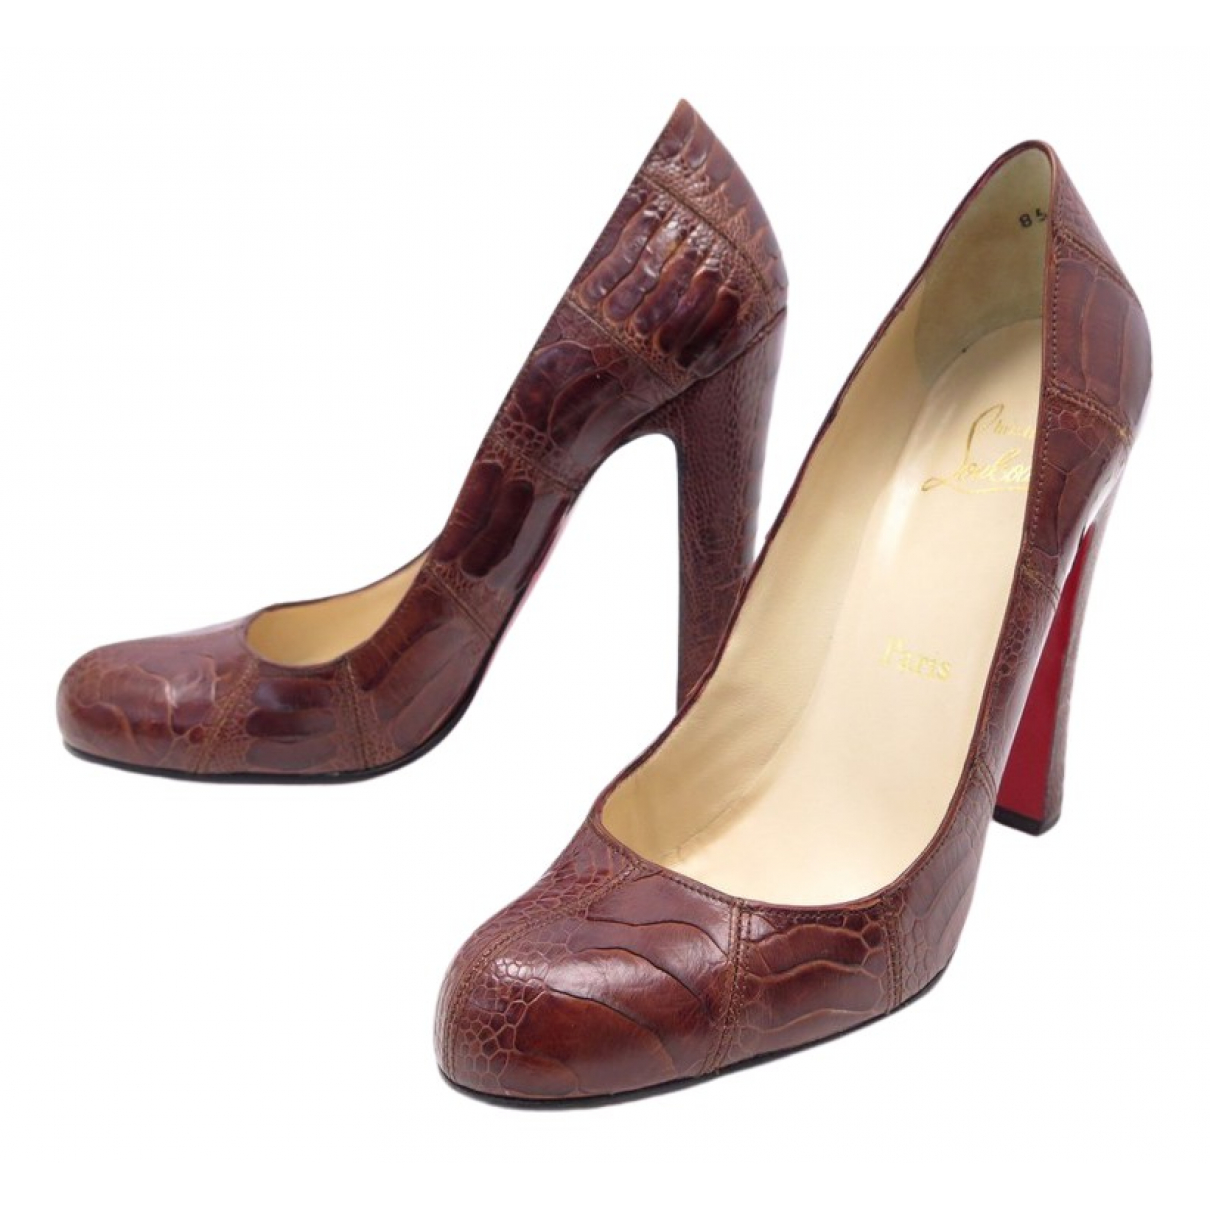 Christian Louboutin Simple pump Brown Exotic leathers Heels for Women 40 EU